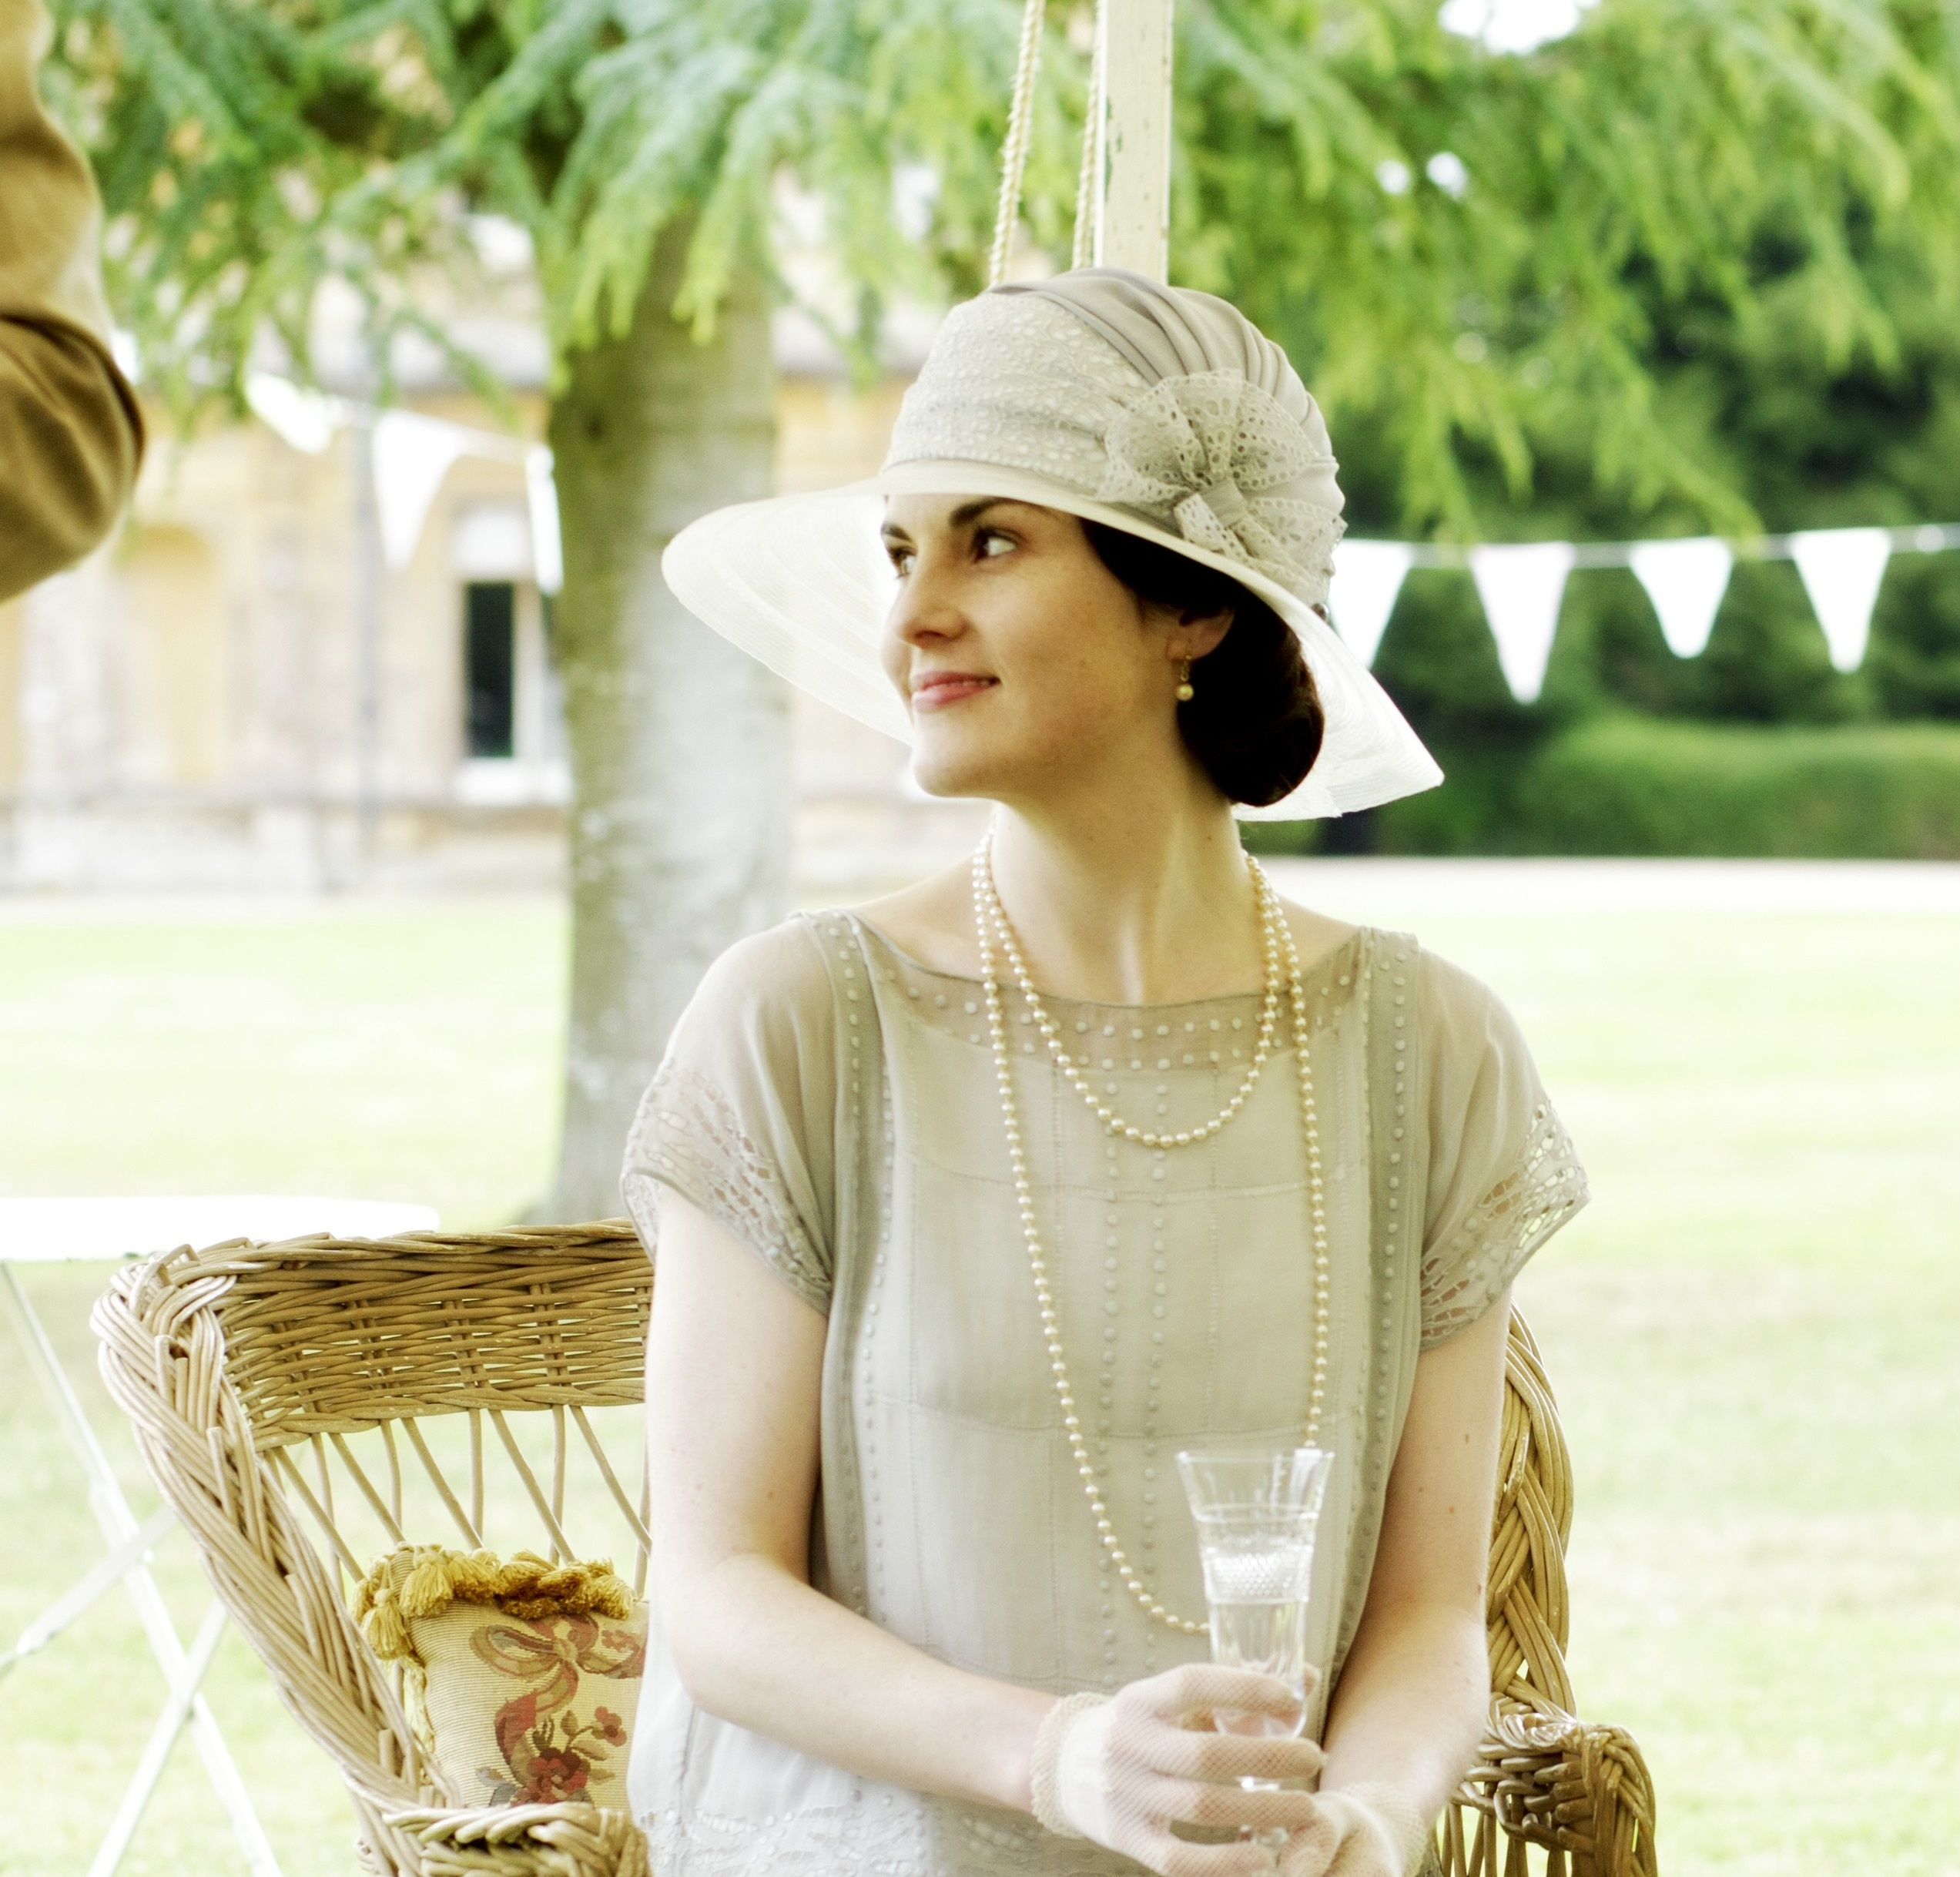 Downton Abbey Freak :P